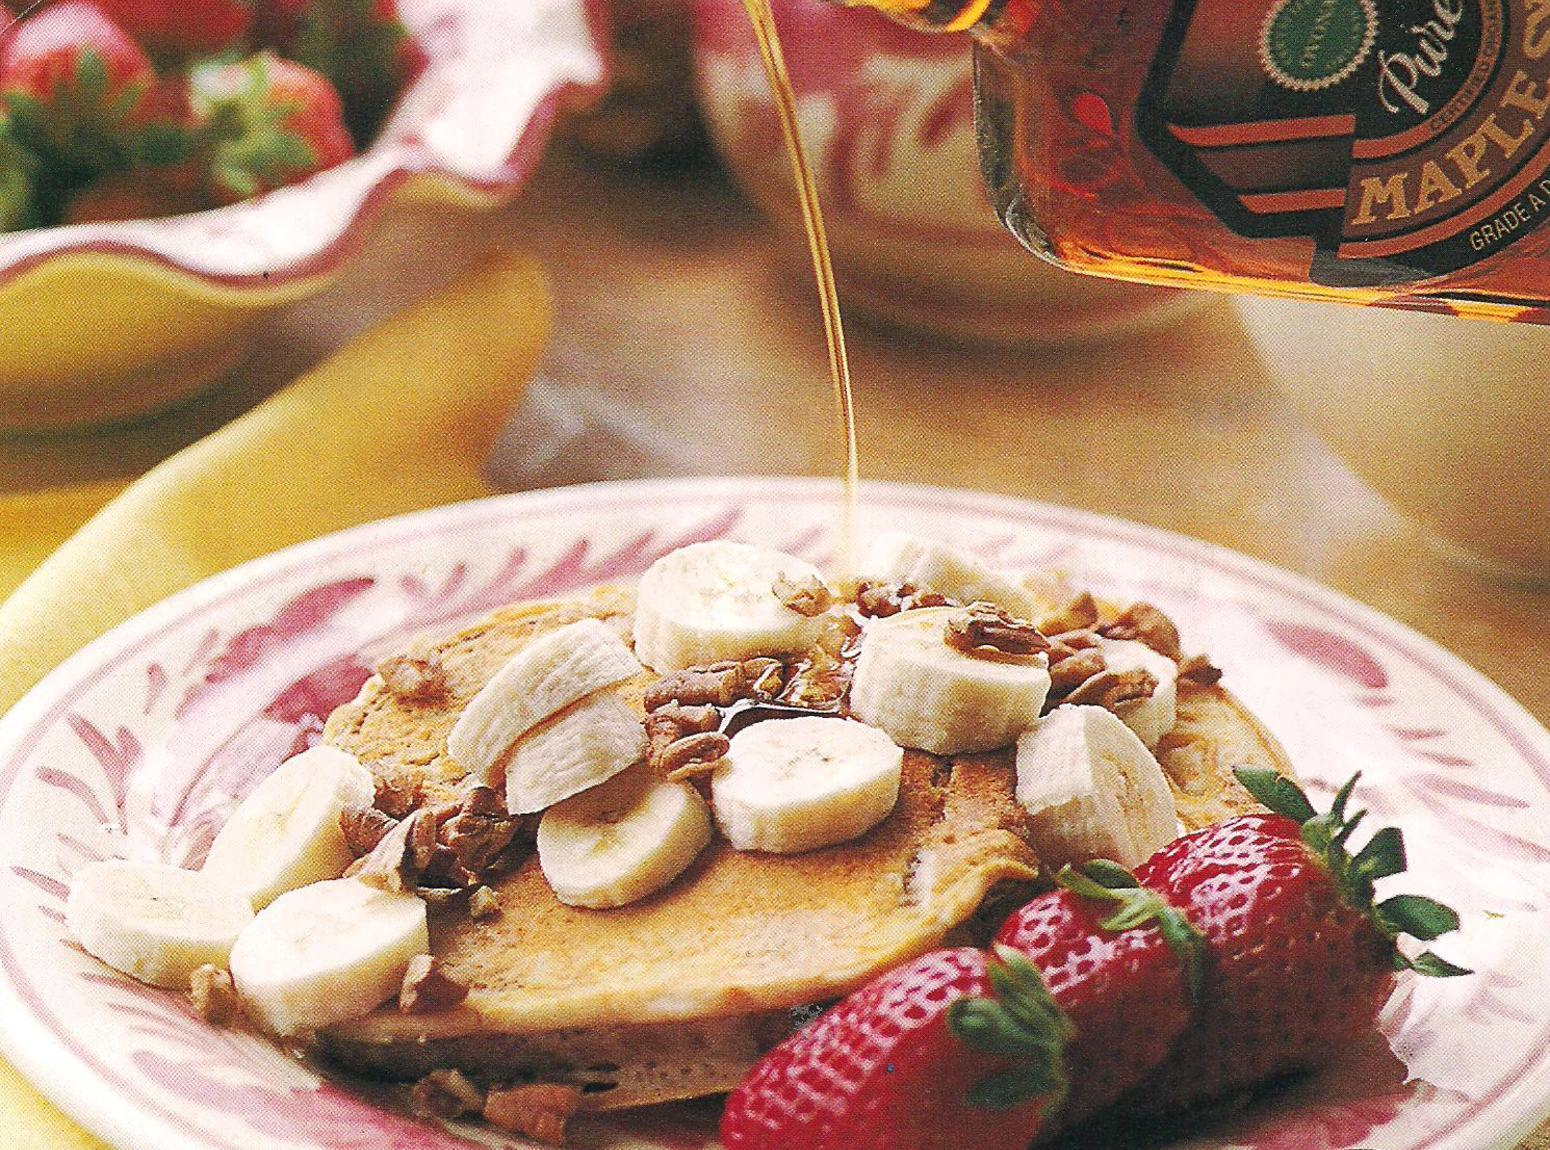 Cinnamon French Toast with Fruit and Pecans Recipe